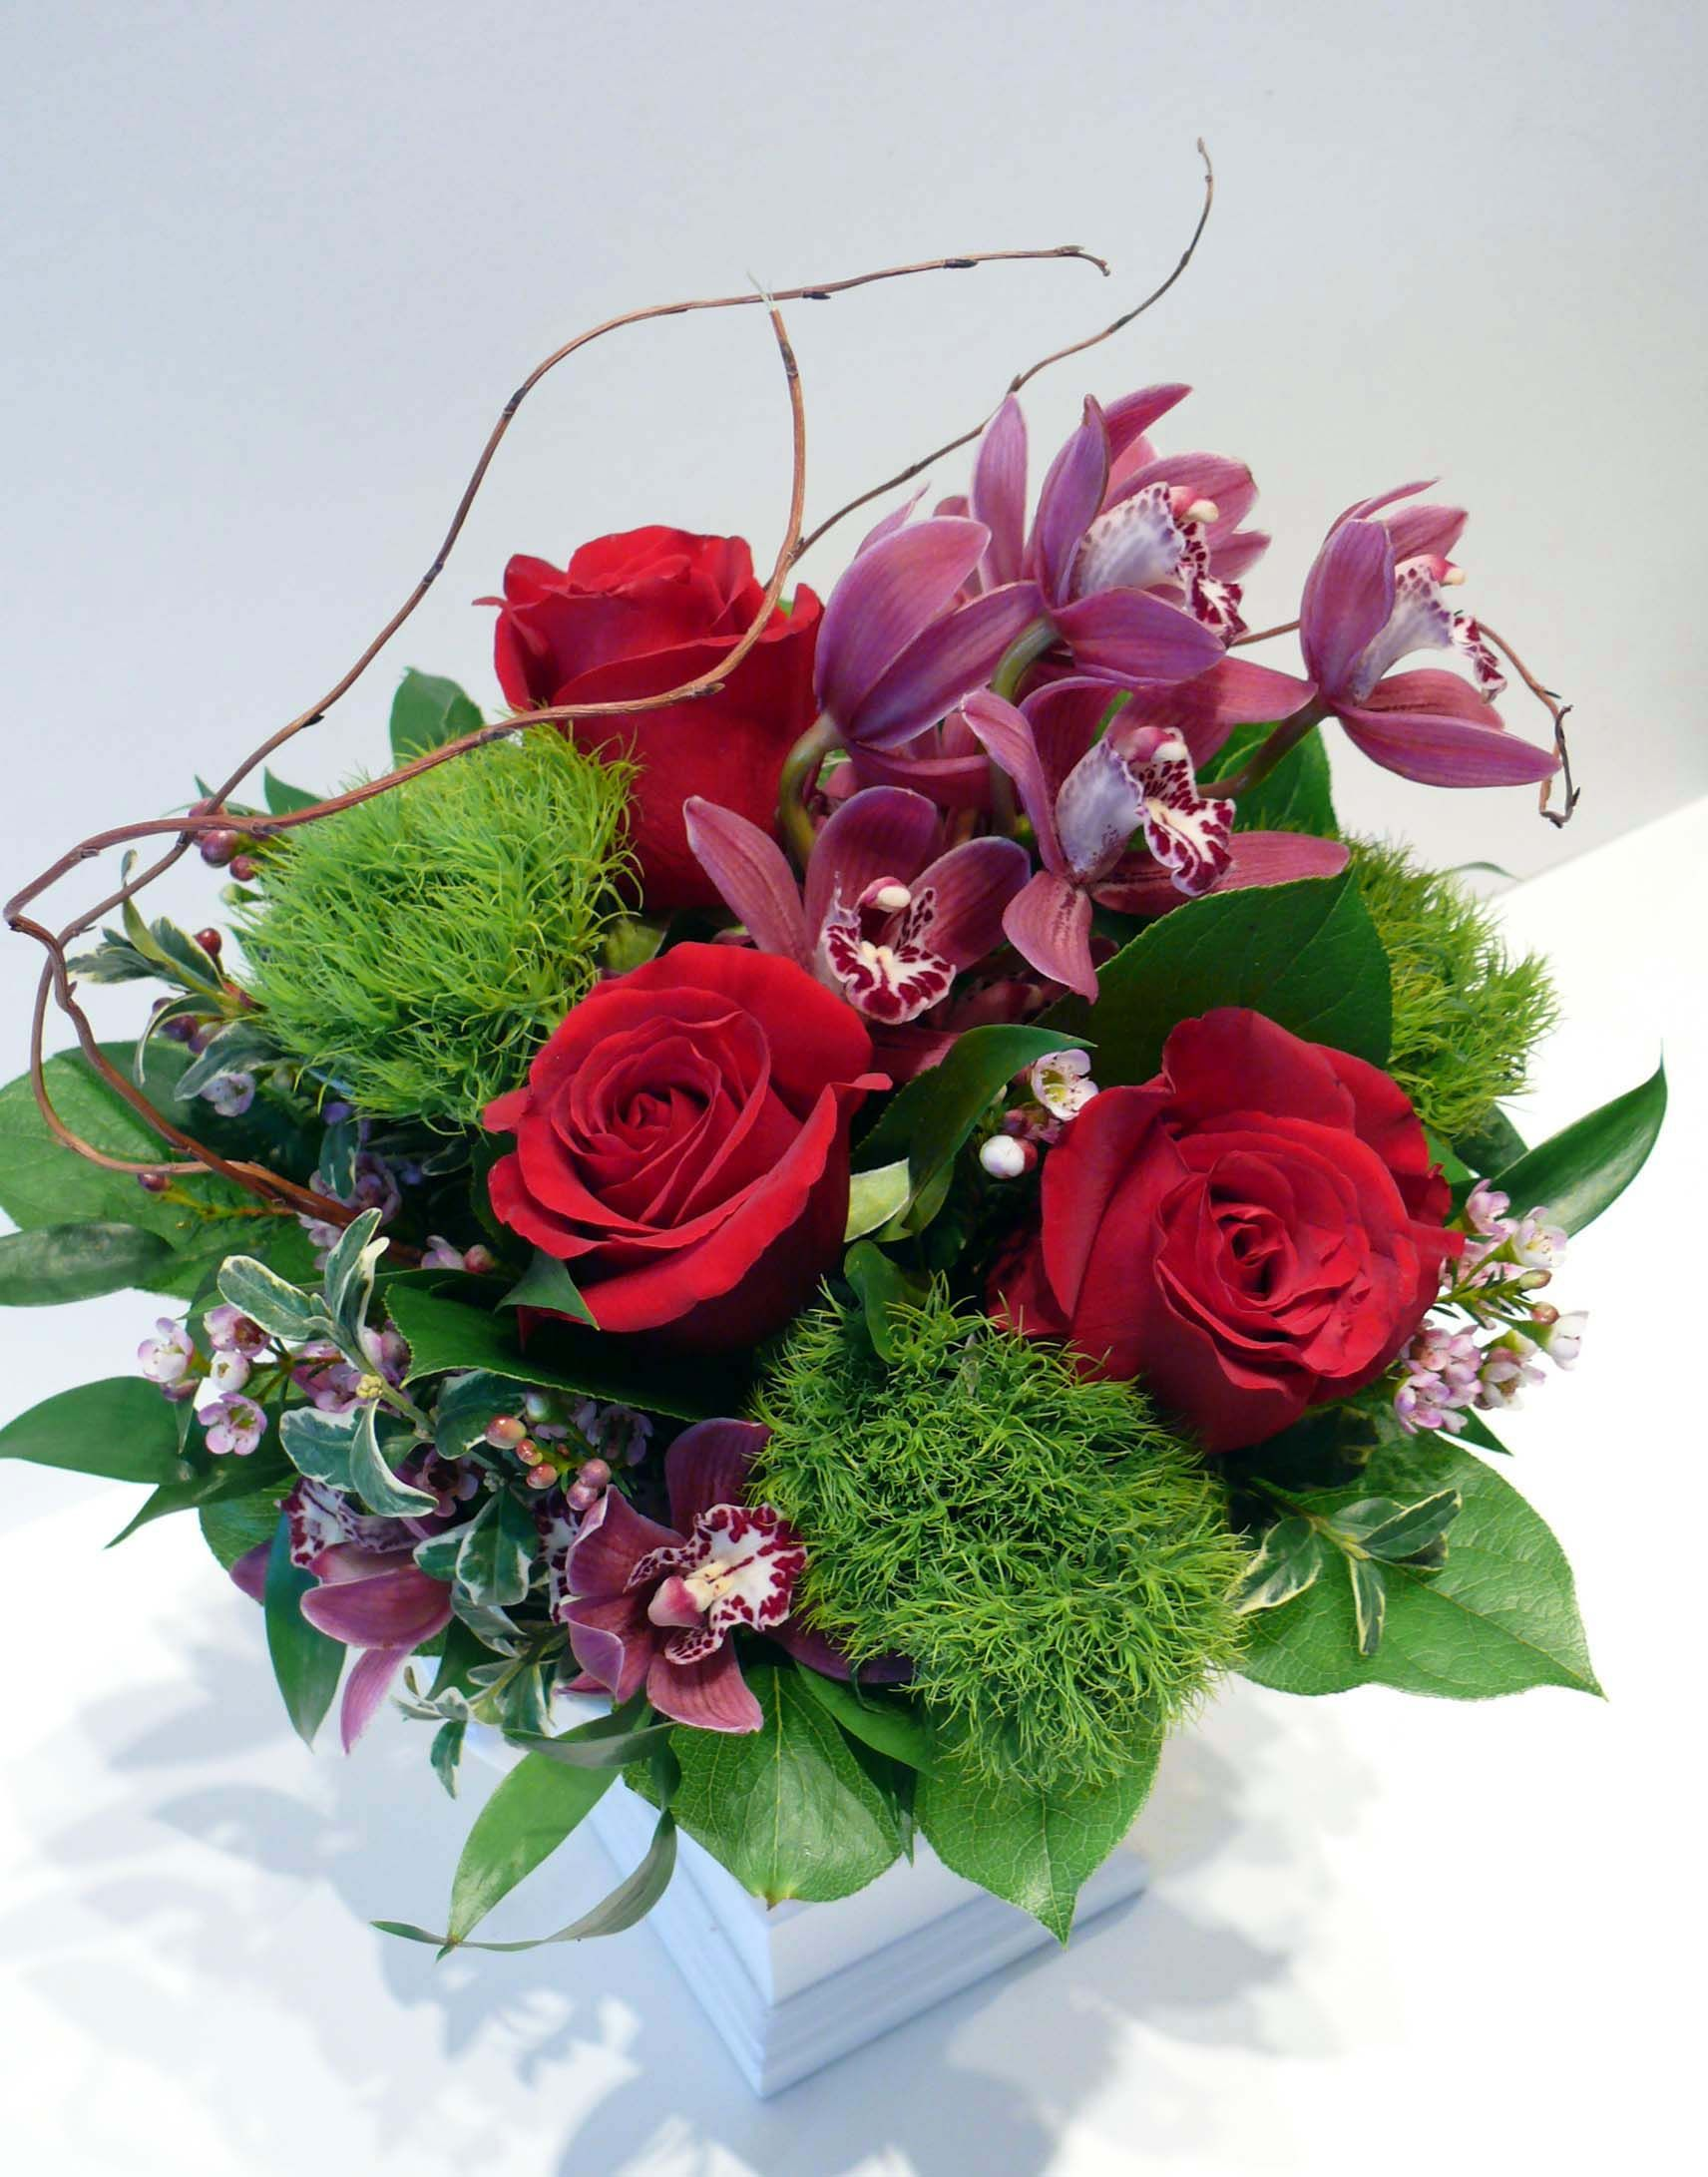 Flower arrangement with cut orchid flowers